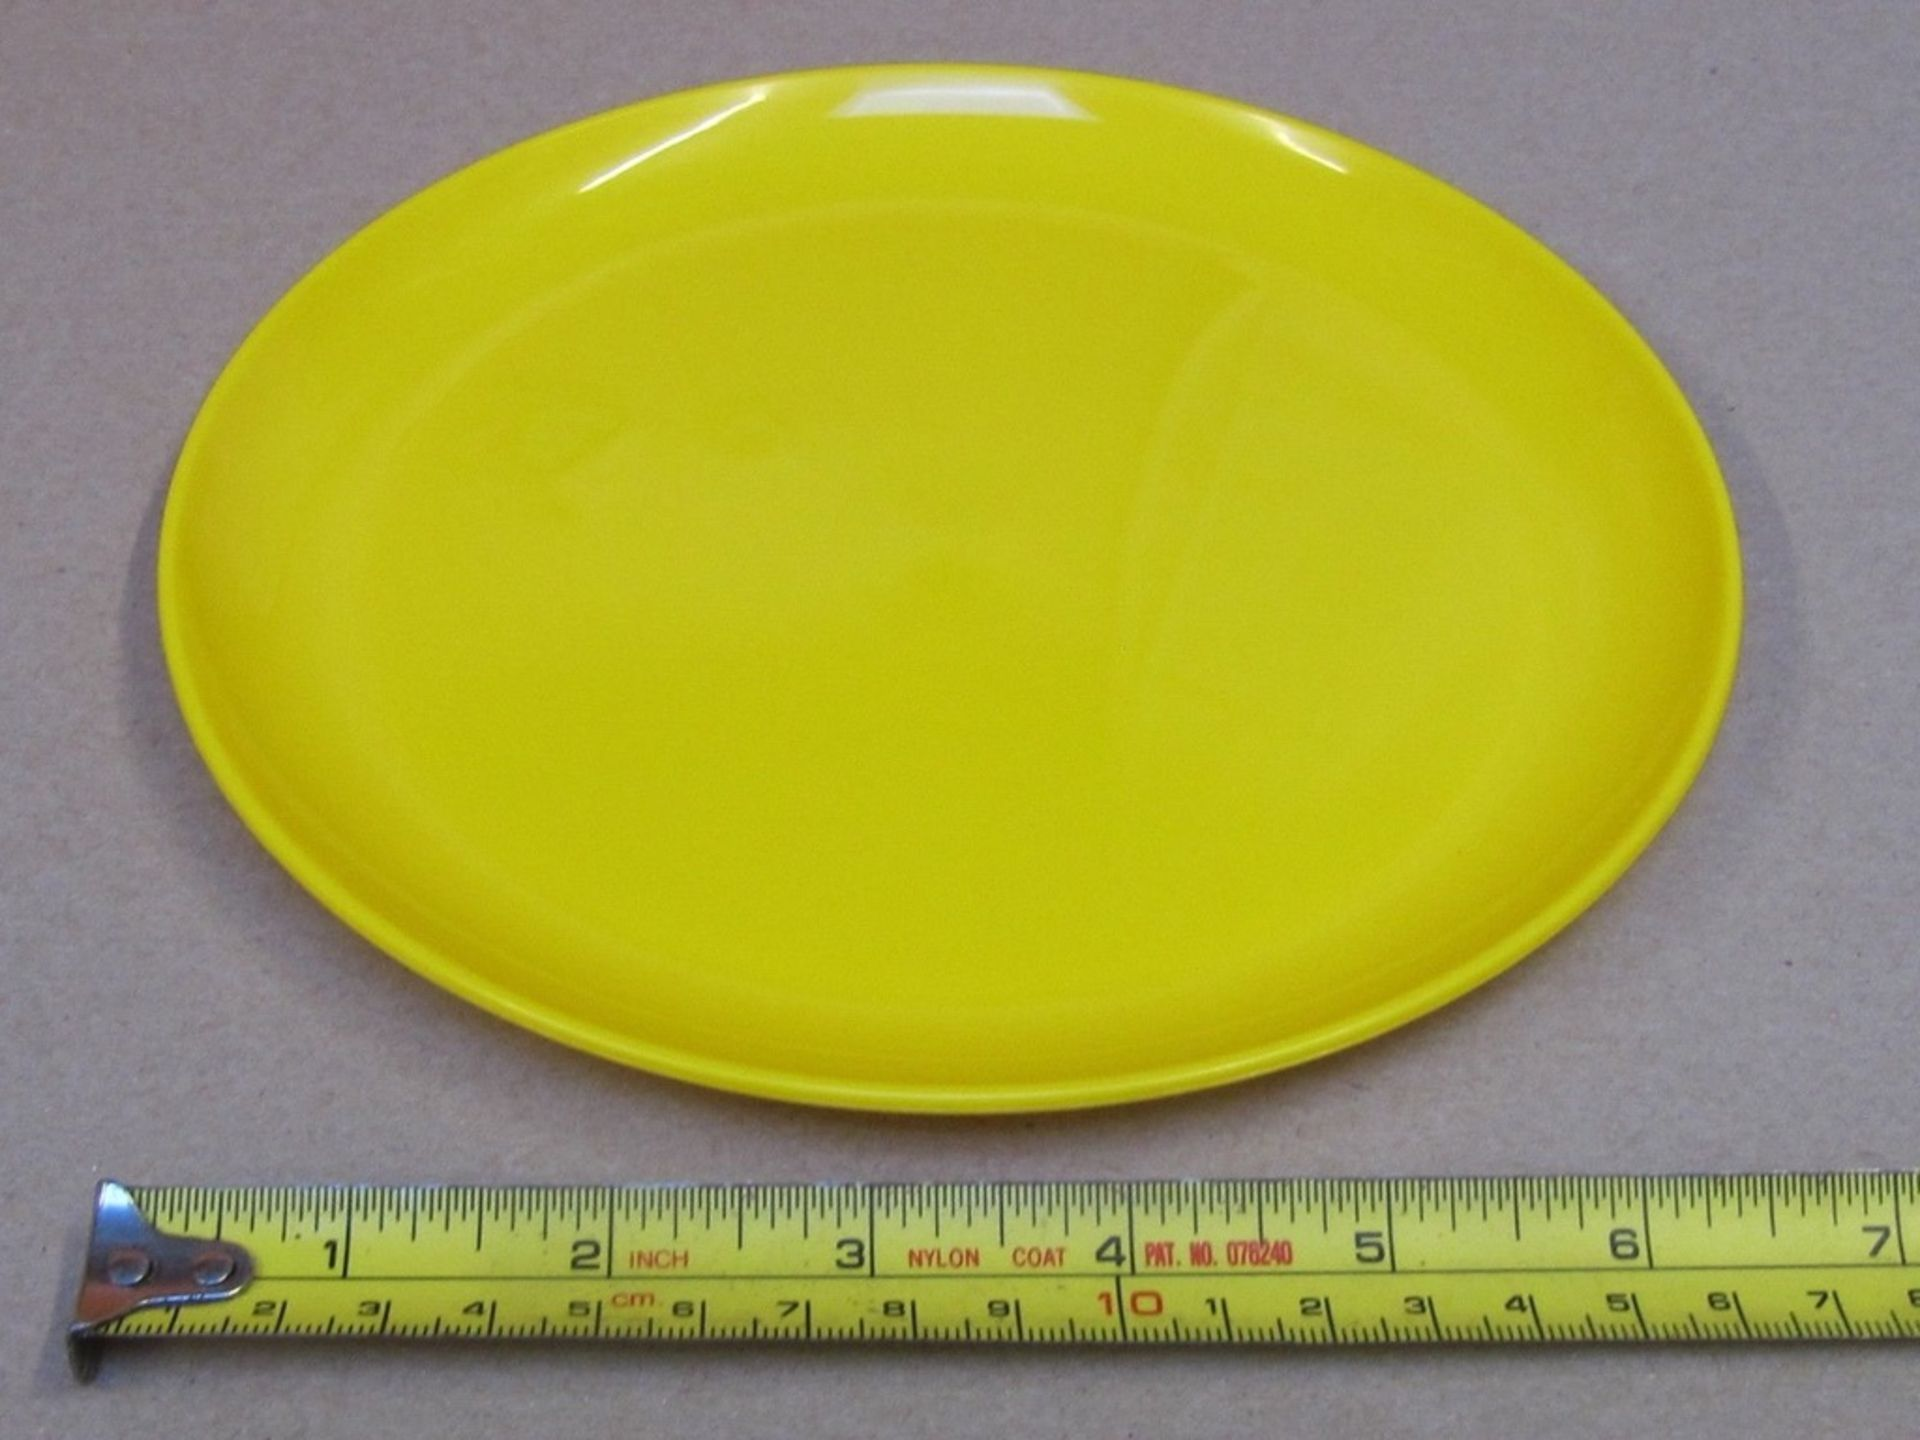 Lot 31 - 30 x Kinderzeug Unbreakable Baby Plate. Dish washer & Microwave safe. no vat on hammer.You will